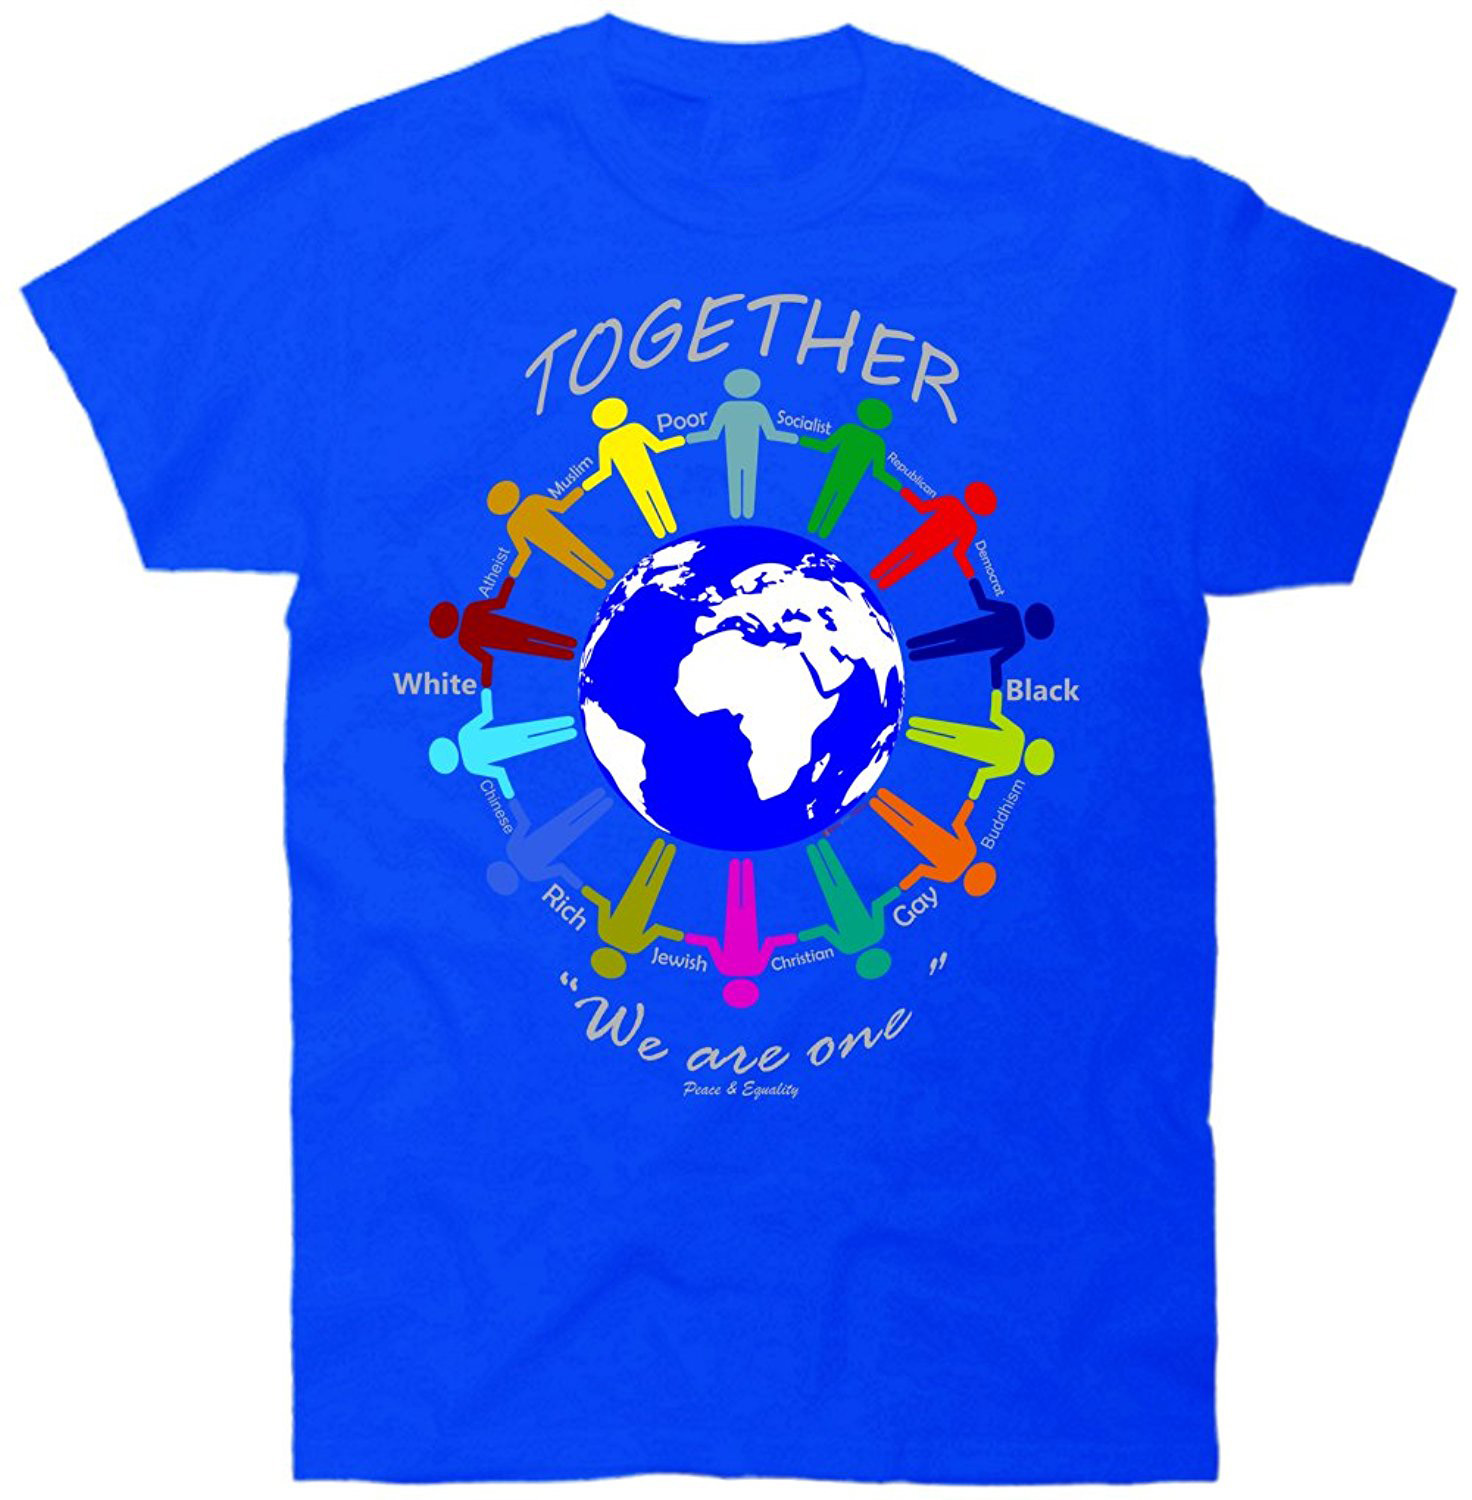 GILDAN T-shirt Summer Style Funny Together We Are One Peace Equality Stop Racism Hate T Shirt